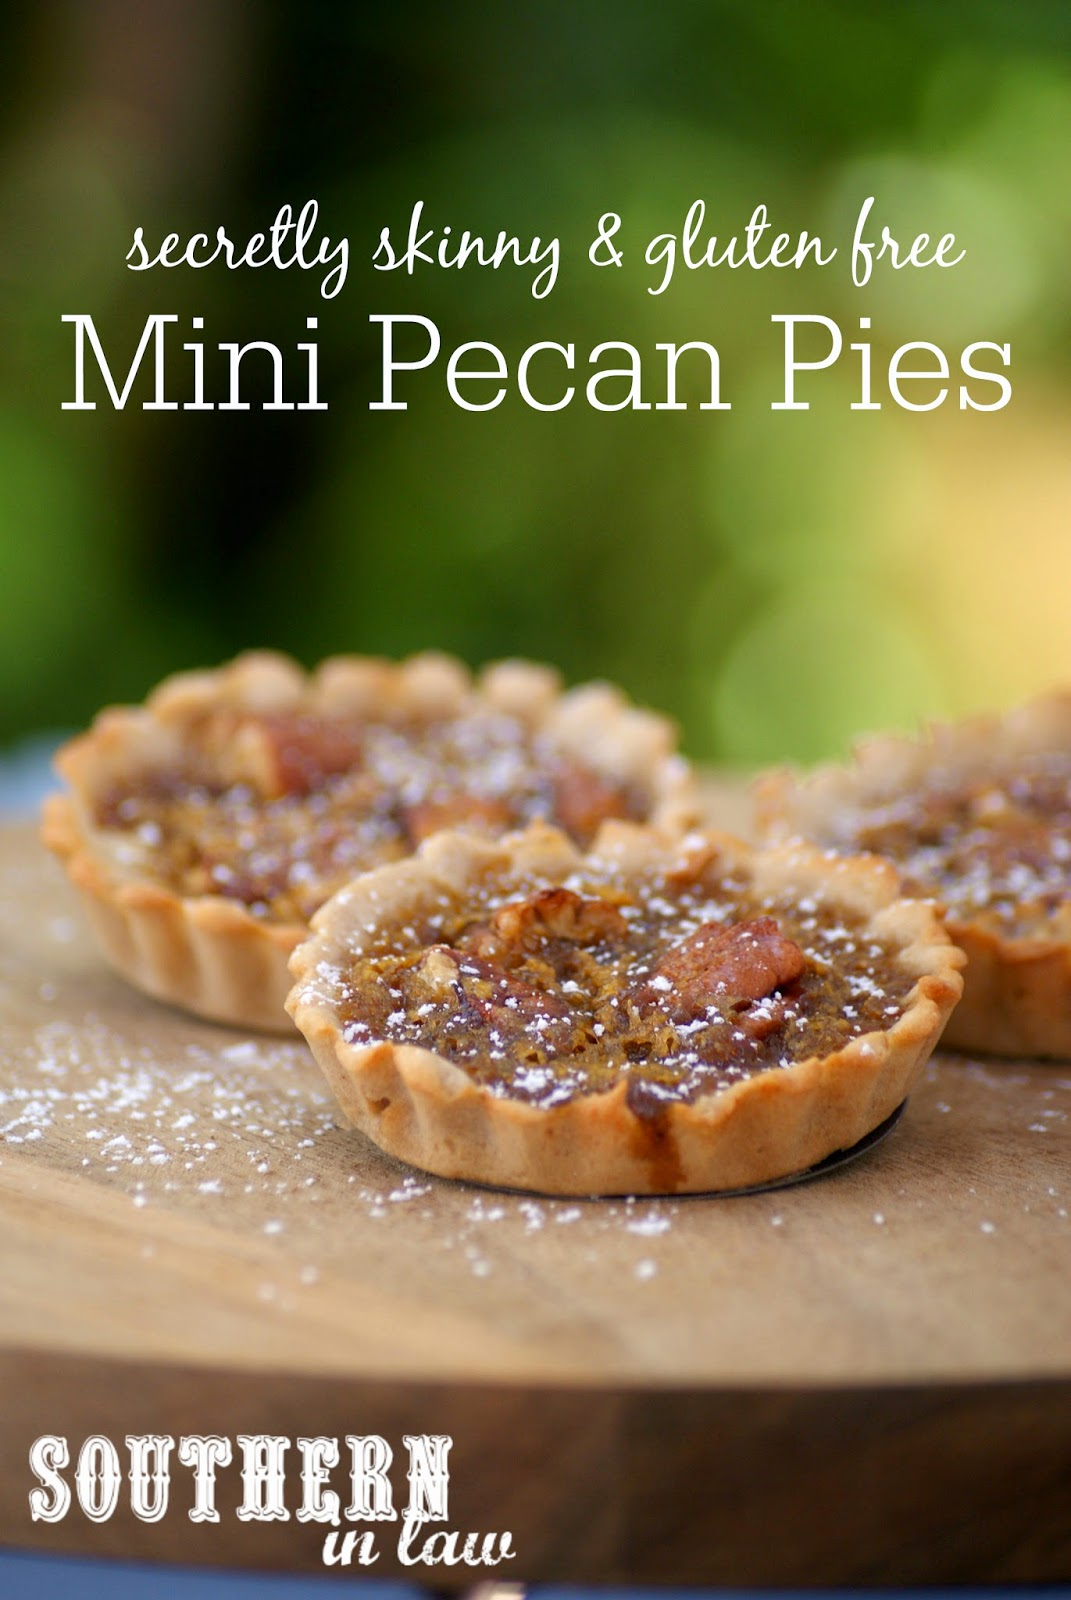 Healthier Mini Pecan Pies Recipe - Low fat, gluten free, lower sugar, easy to make